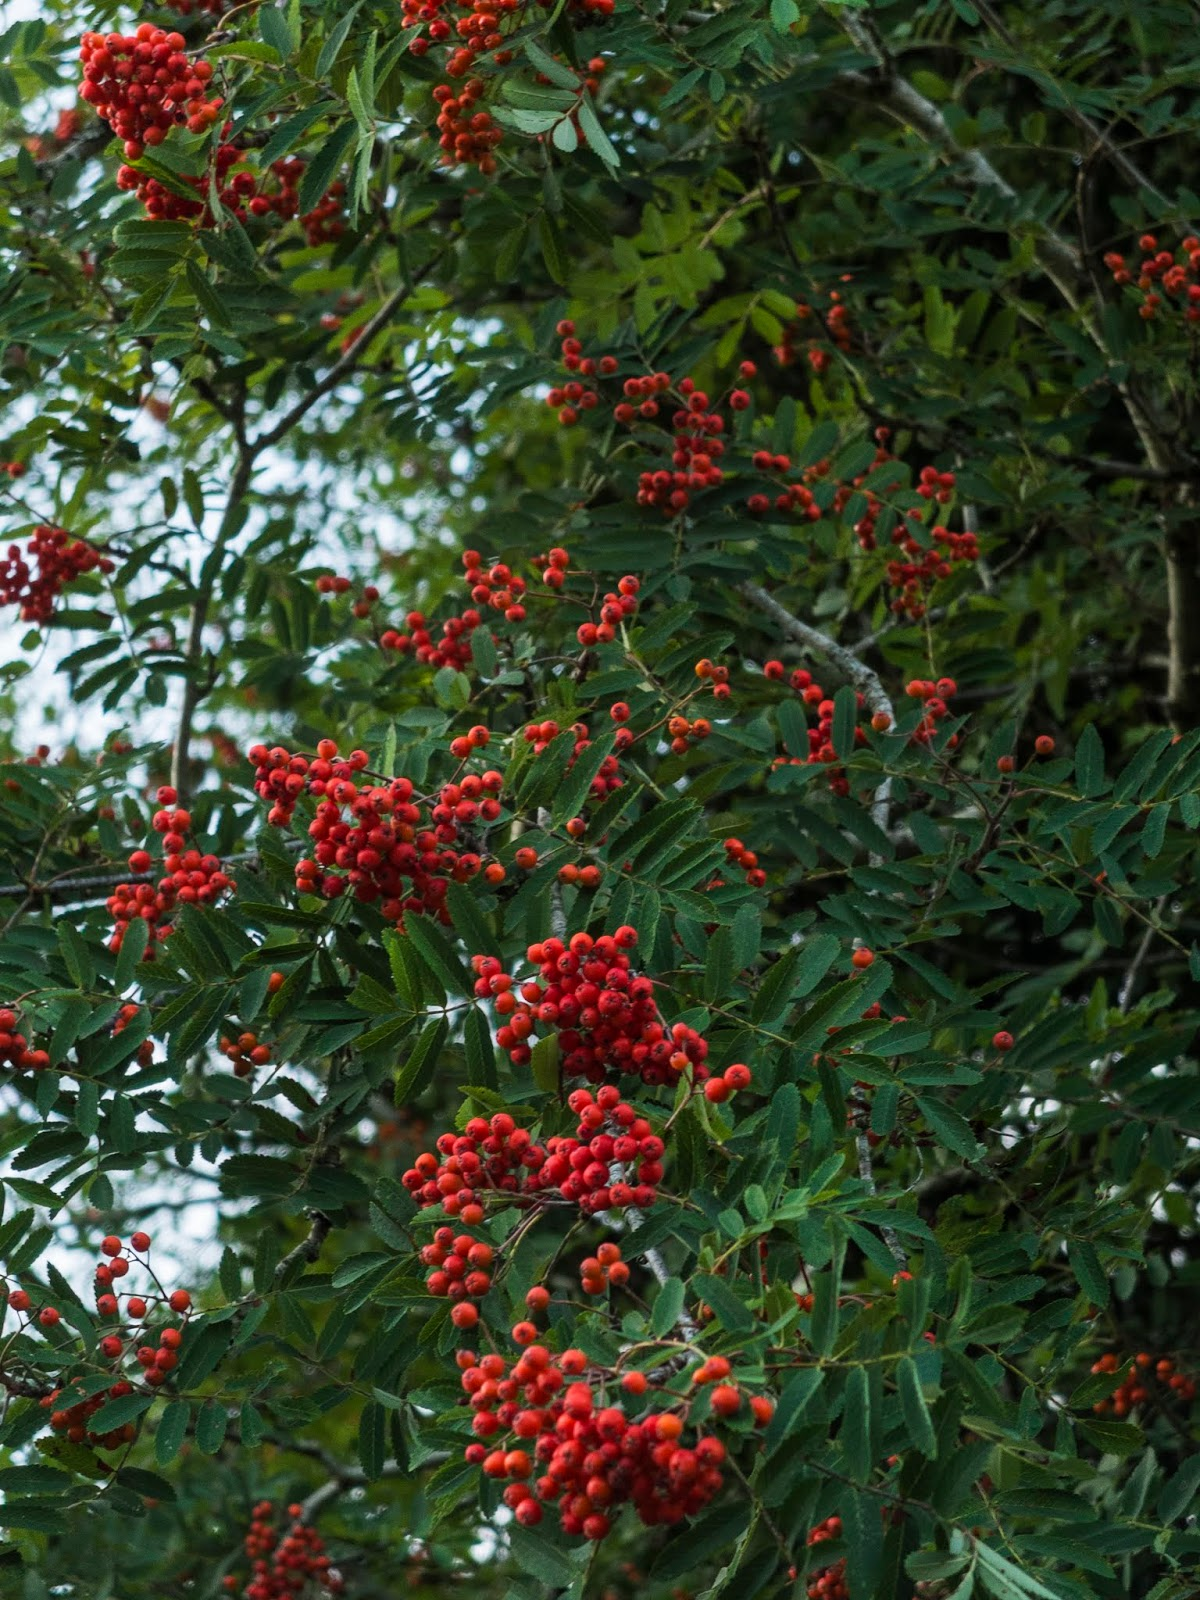 Rowan berries hanging from the tree.